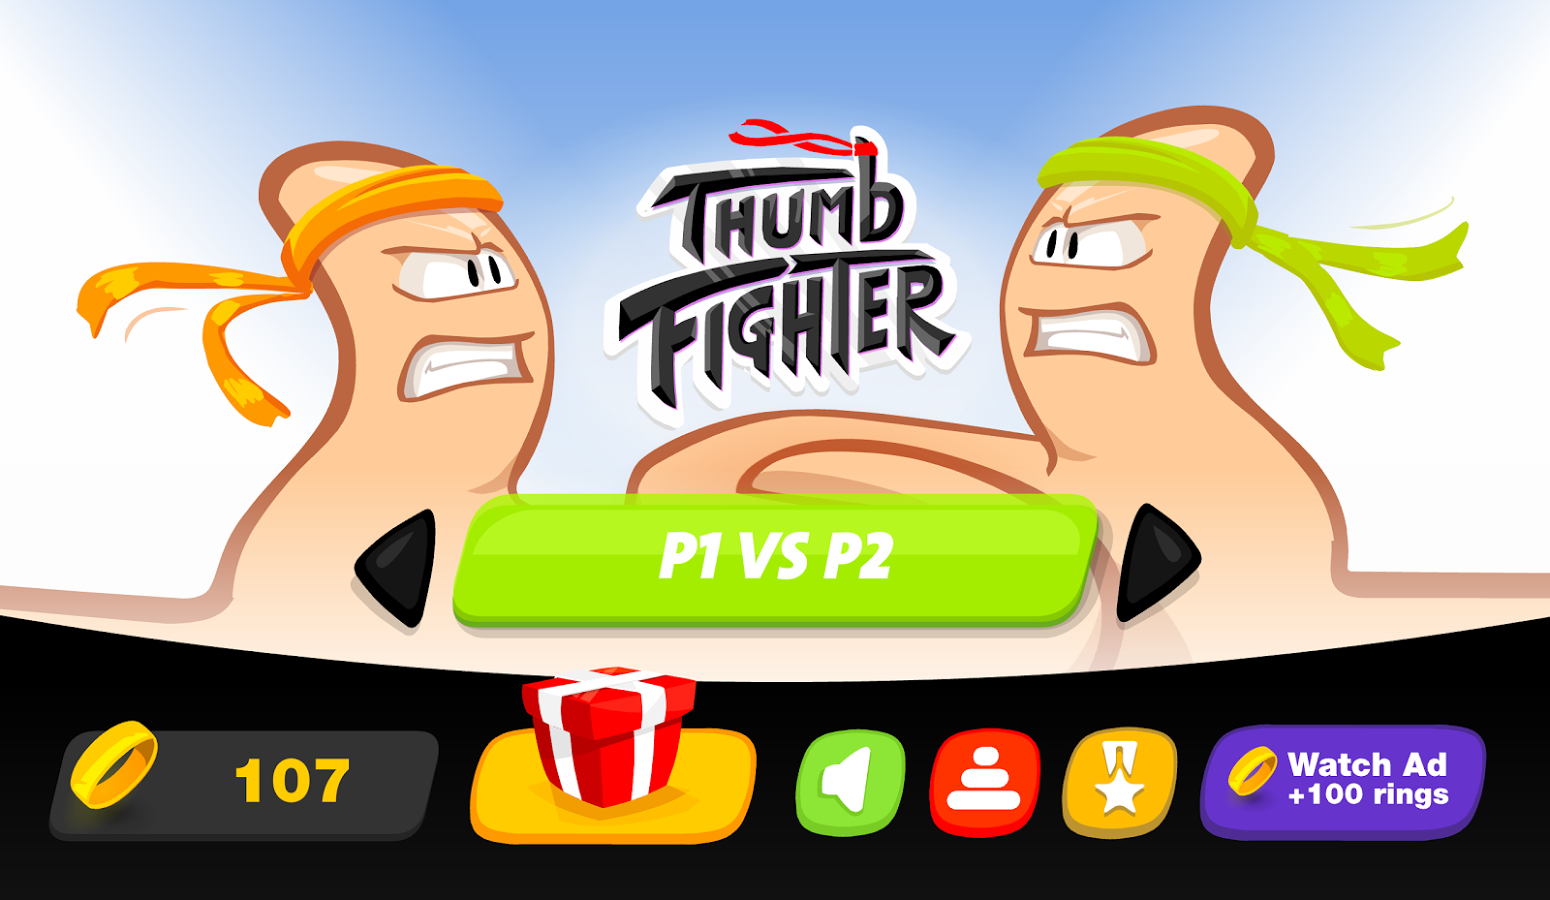 Thumb Fighter.